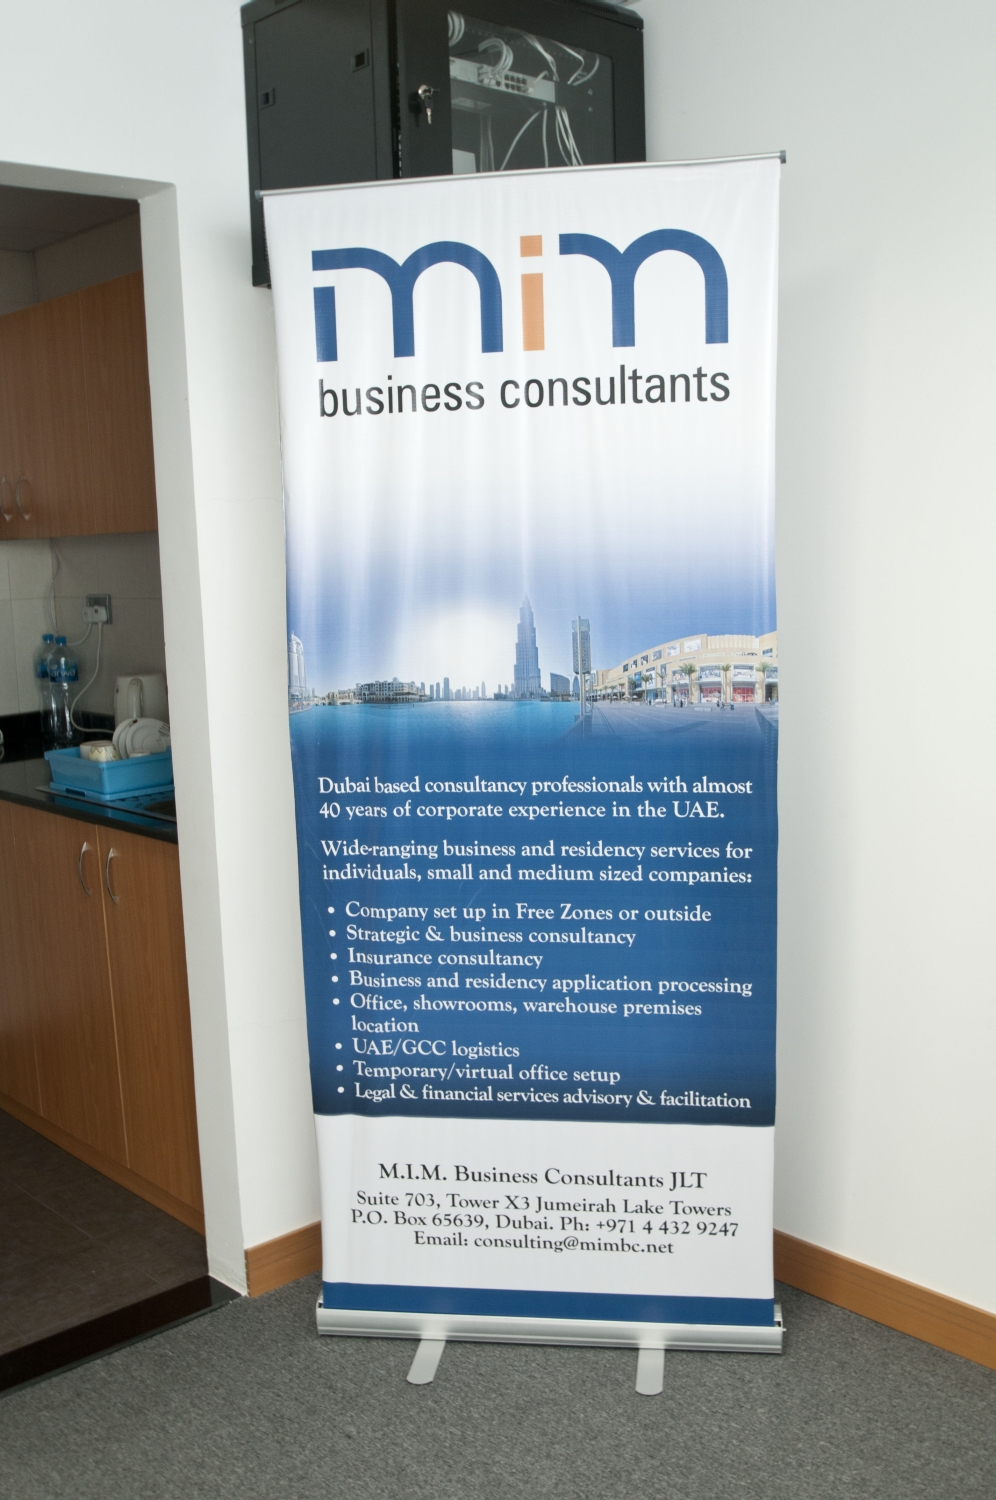 MIMBC participation at a business networking event